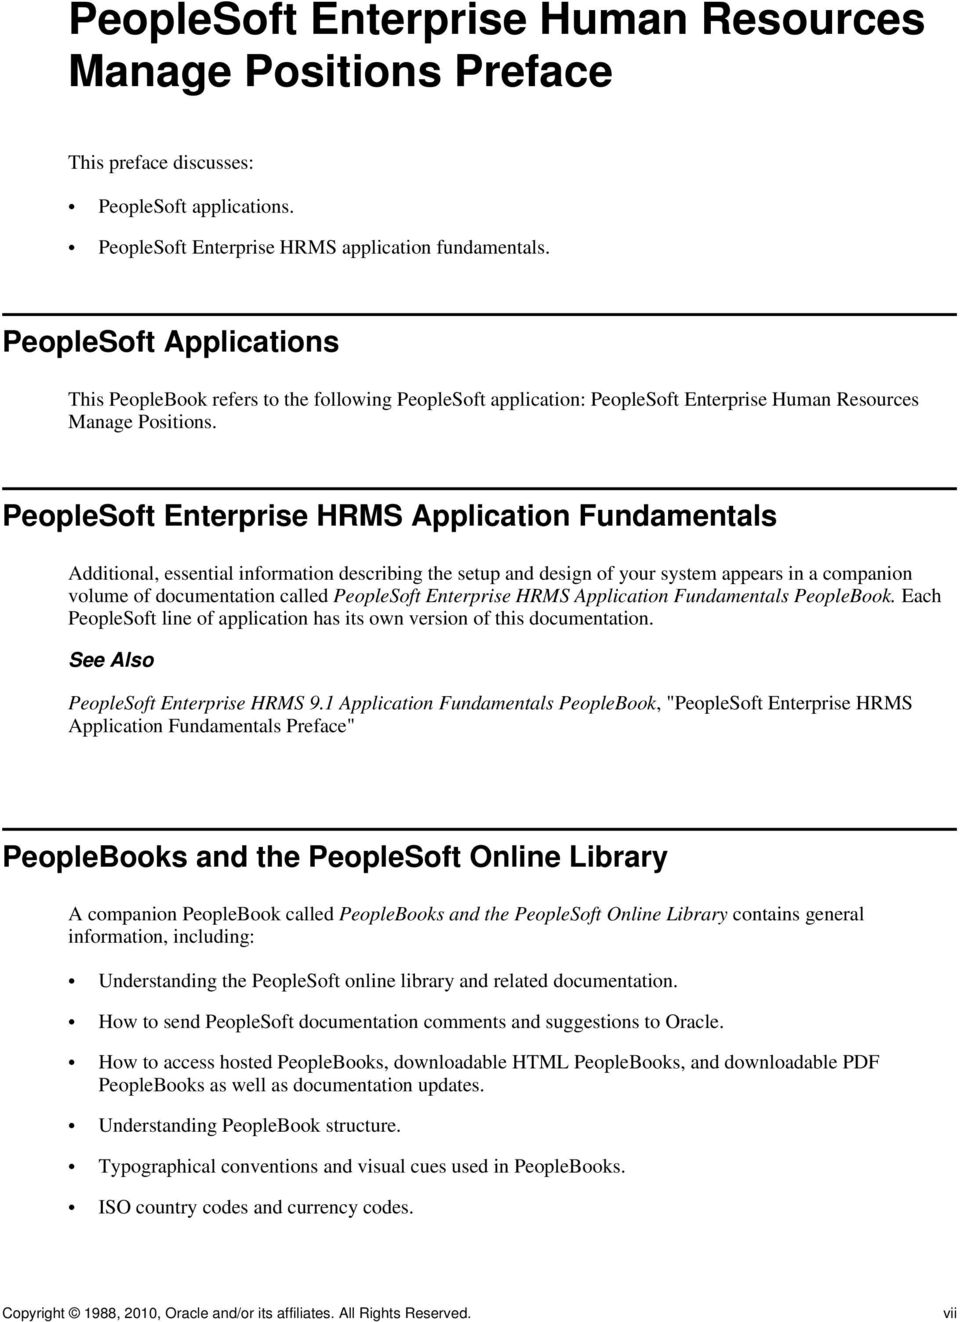 Peoplesoft Hrms Reporting Pdf